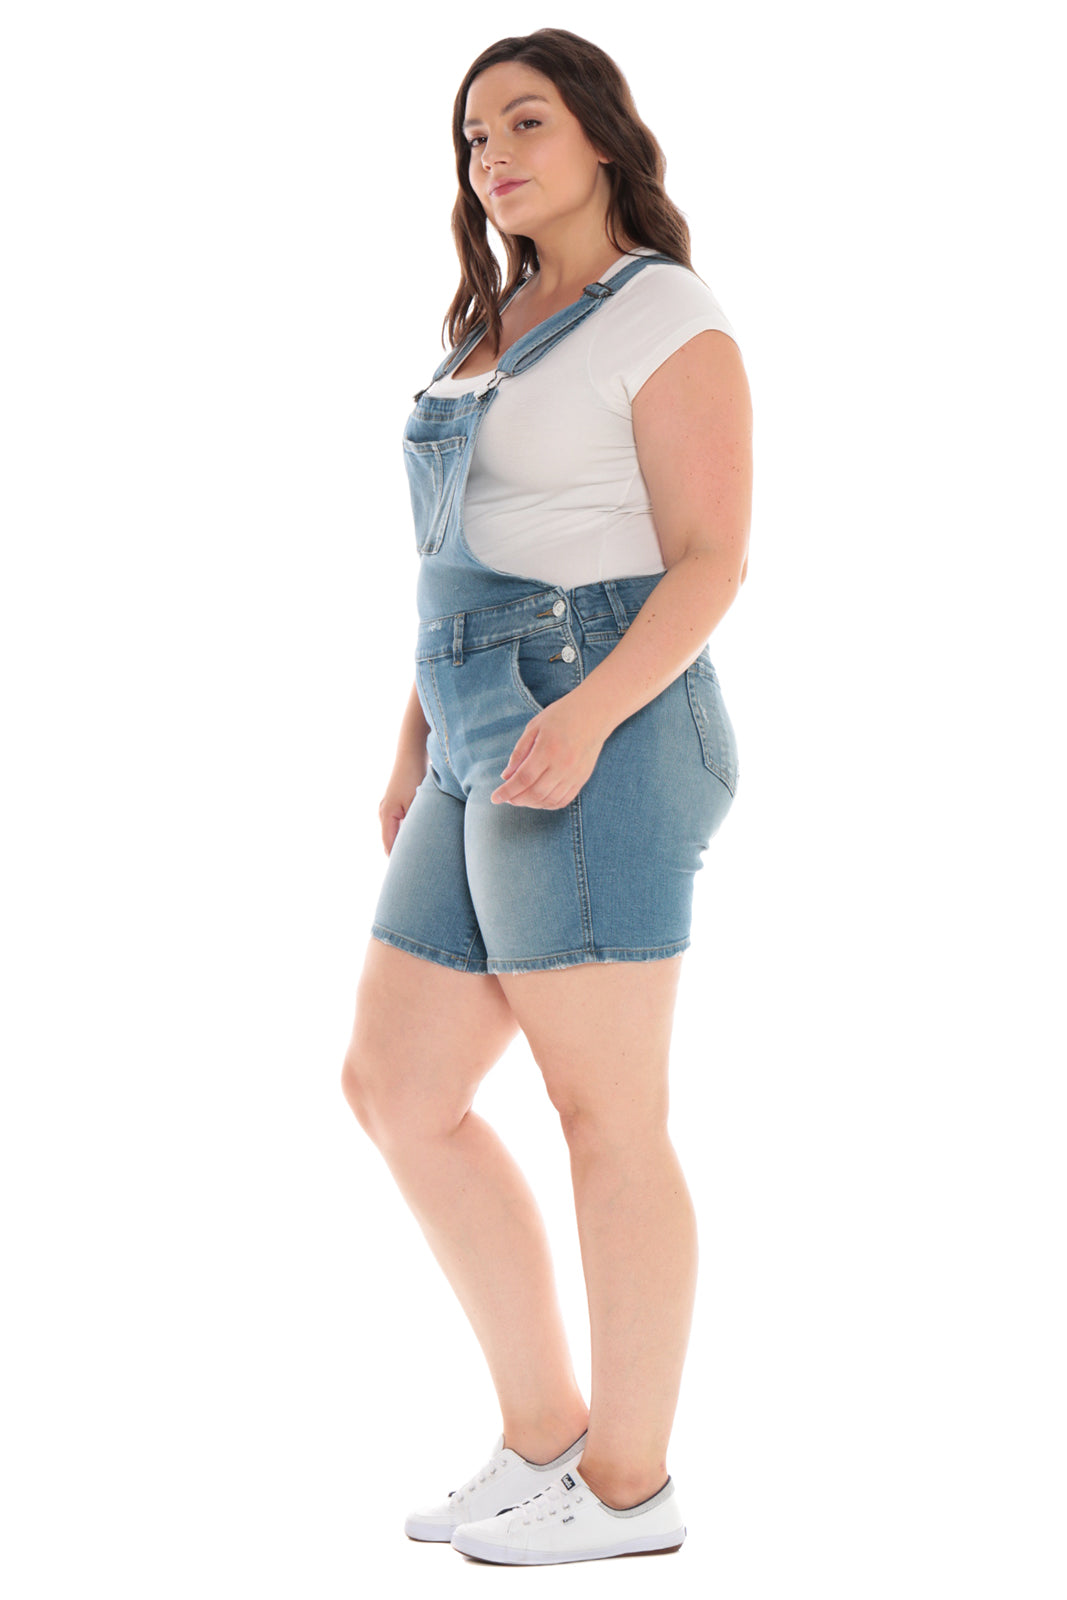 SLINK JEANS SHORT OVERALL IN RENA WASH